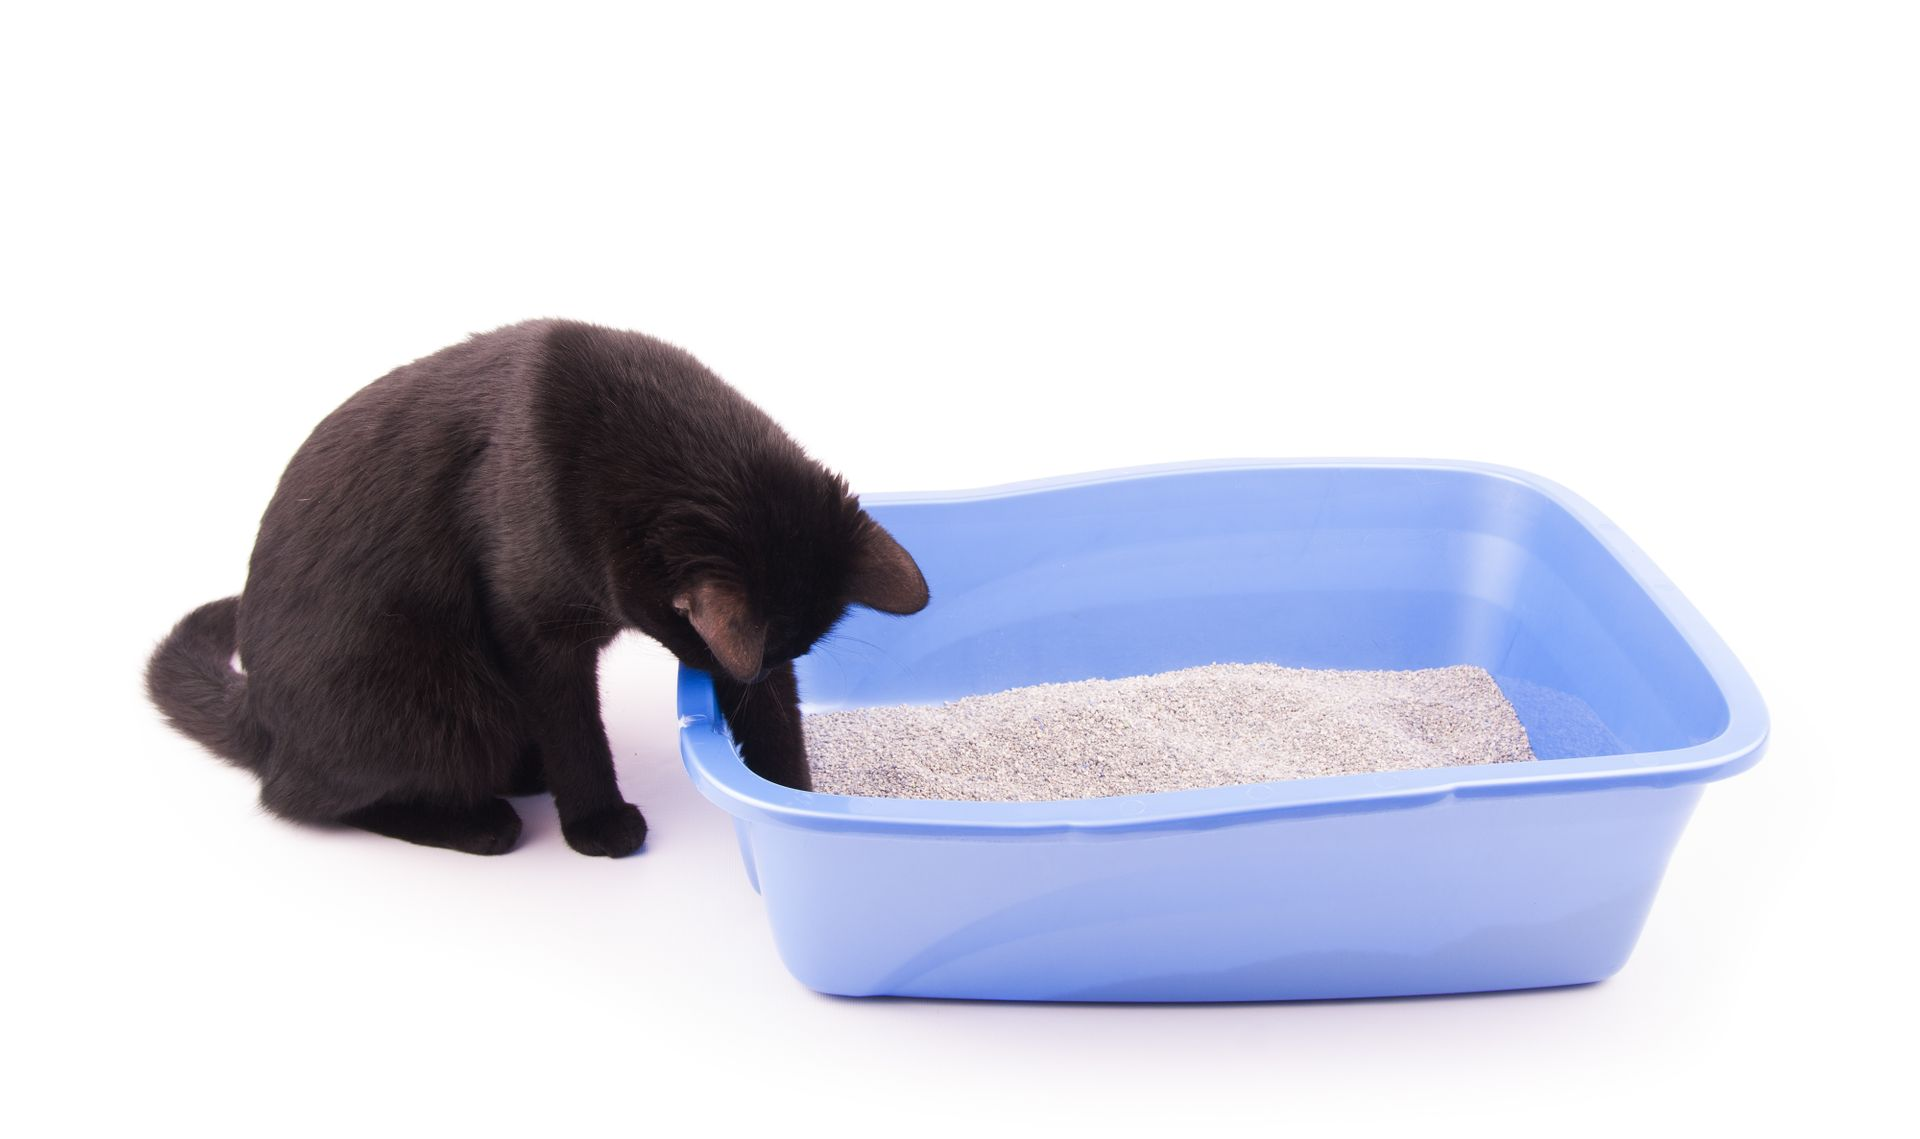 cat taking too many trips to the litter box